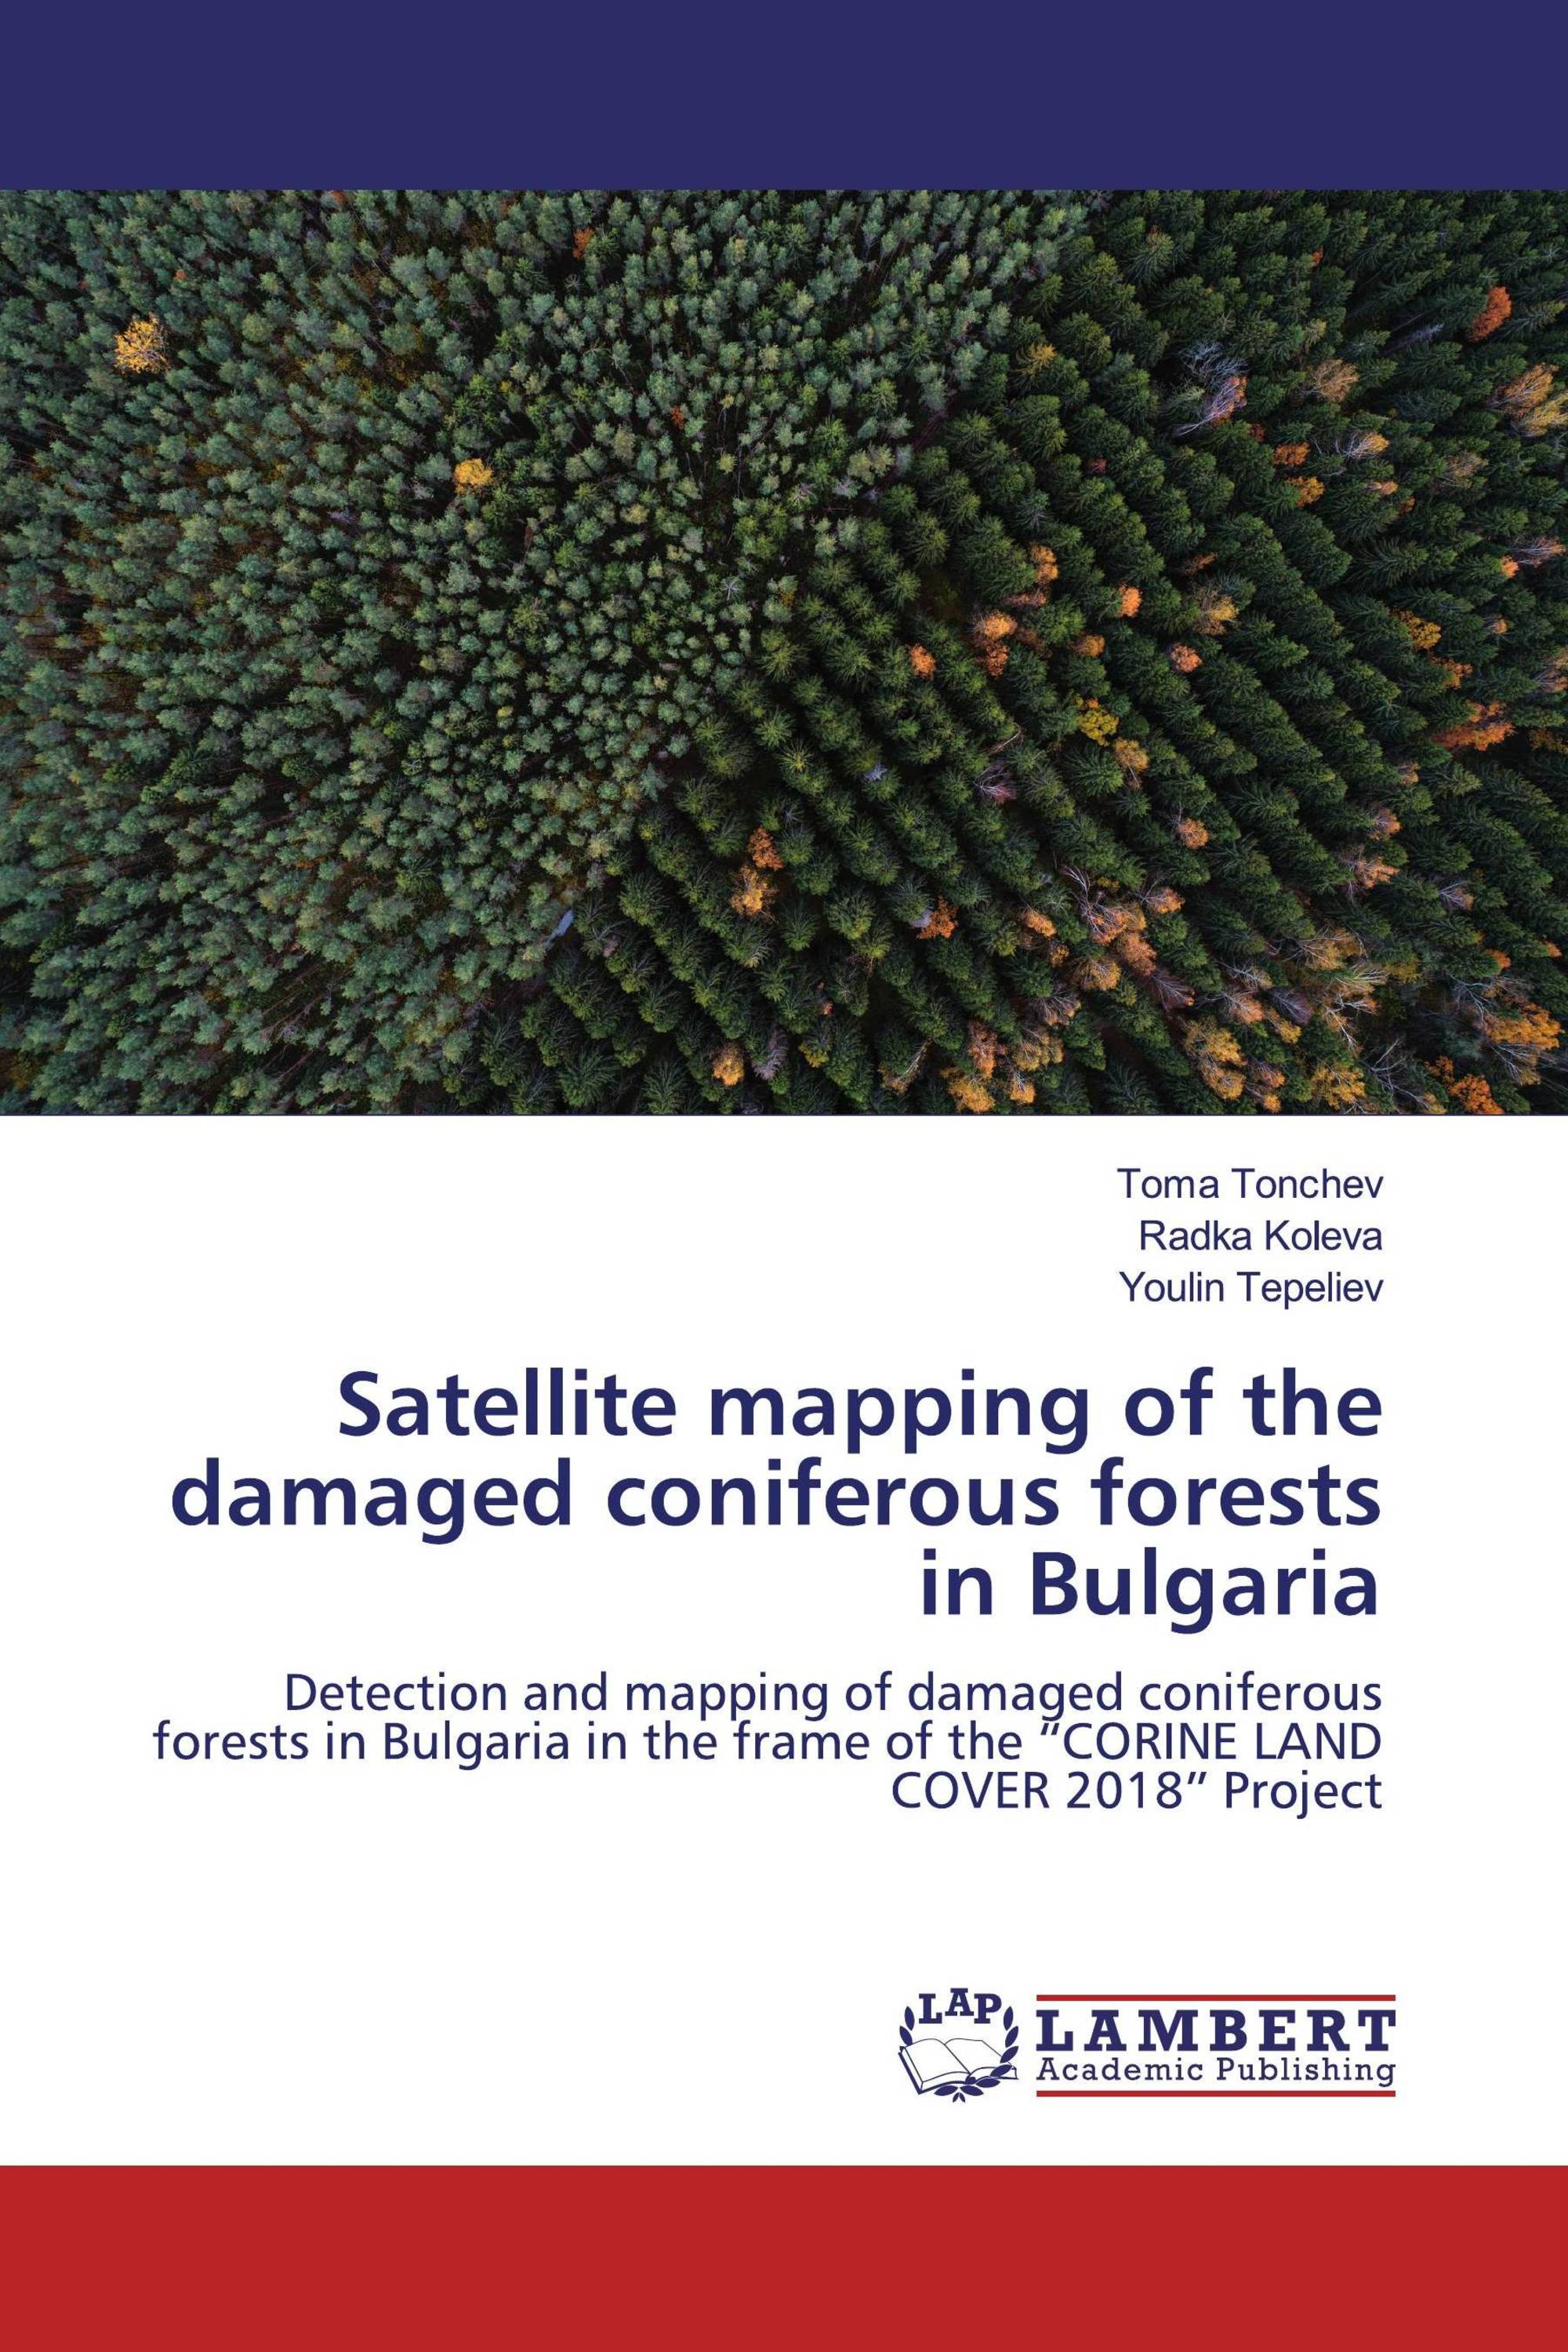 Satellite mapping of the damaged coniferous forests in Bulgaria